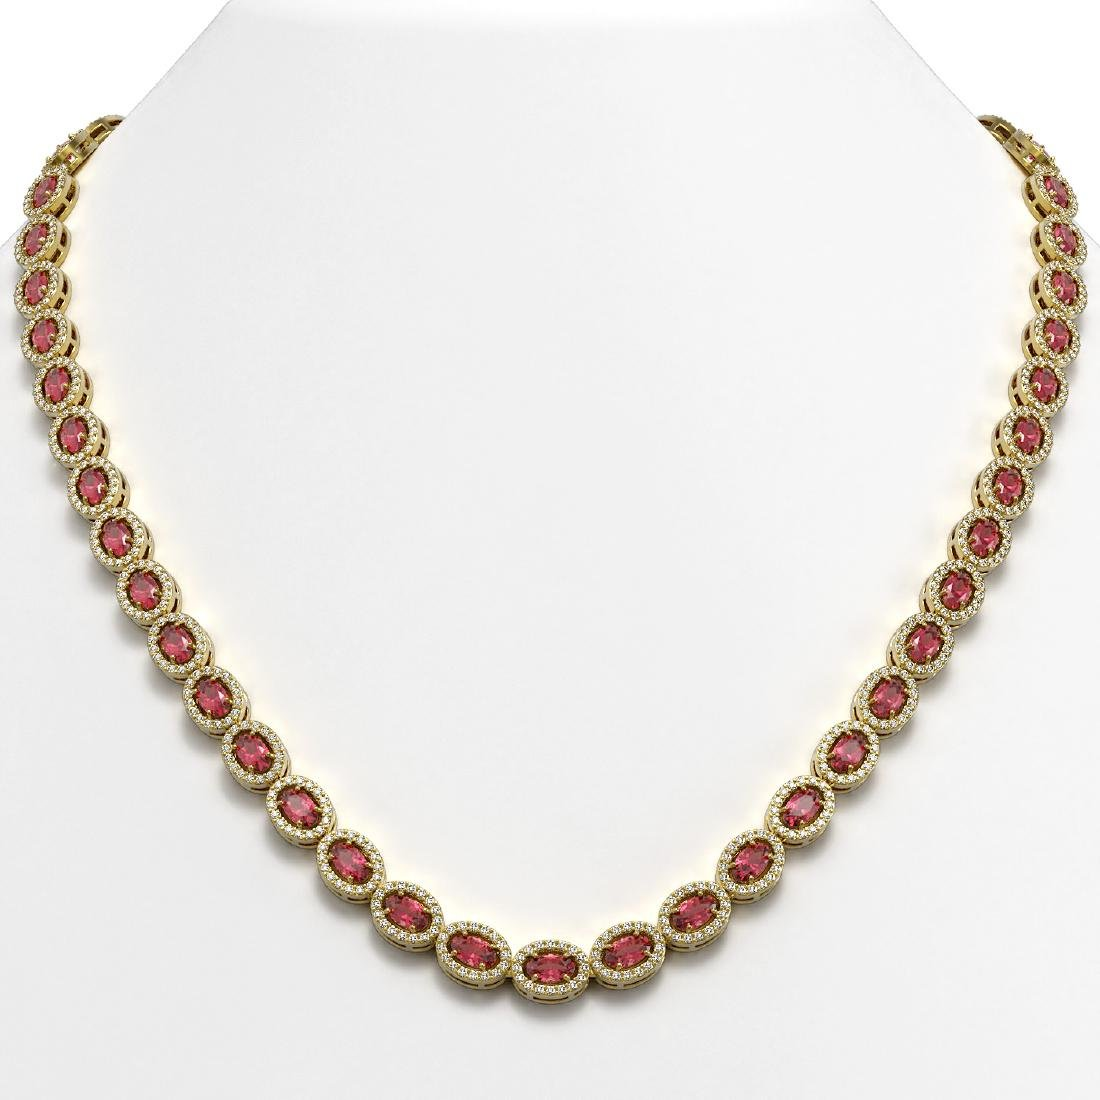 23.57 CTW Tourmaline & Diamond Halo Necklace 10K Yellow